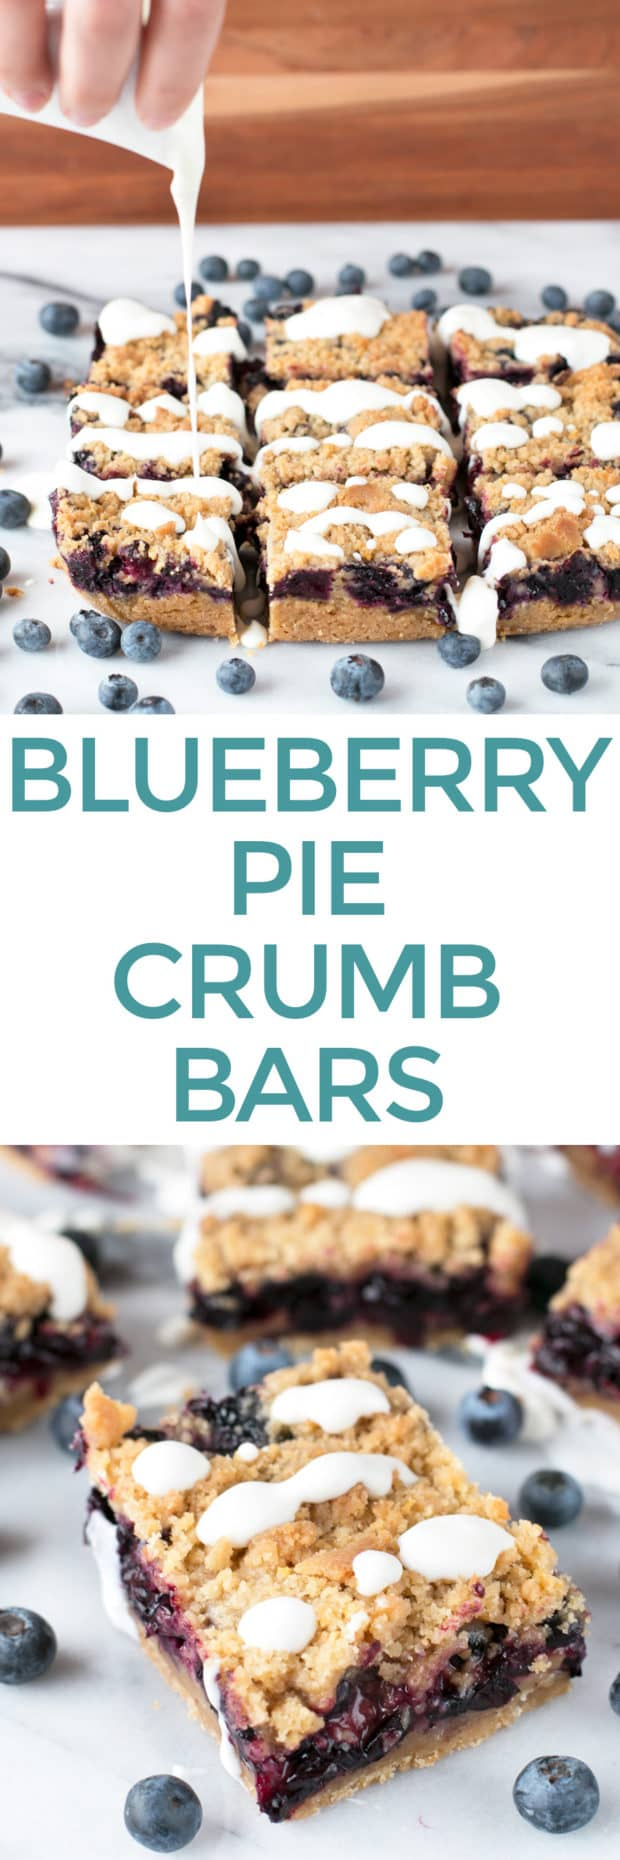 Blueberry Pie Crumb Bars | cakenknife.com #dessert #pie #summer